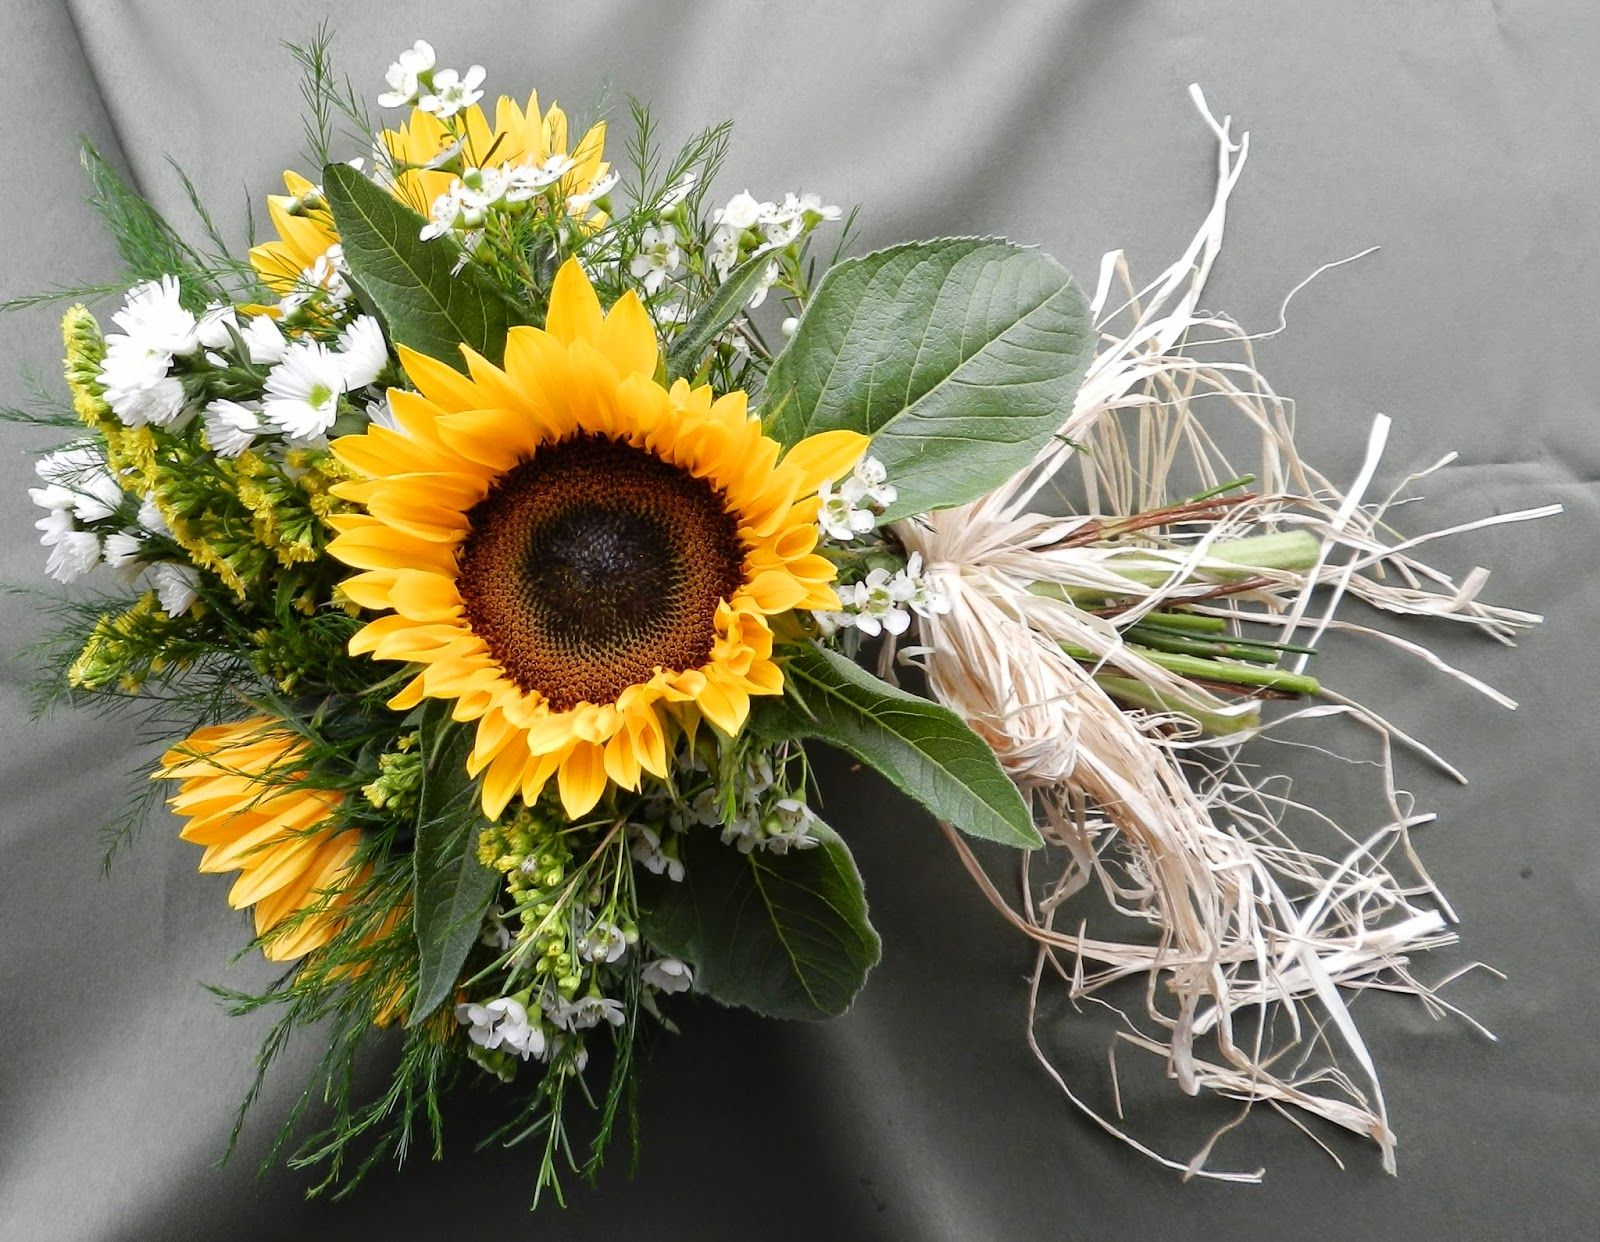 sunflowers and dafodils daises pastel.flowers wedding bouquet - Google Search